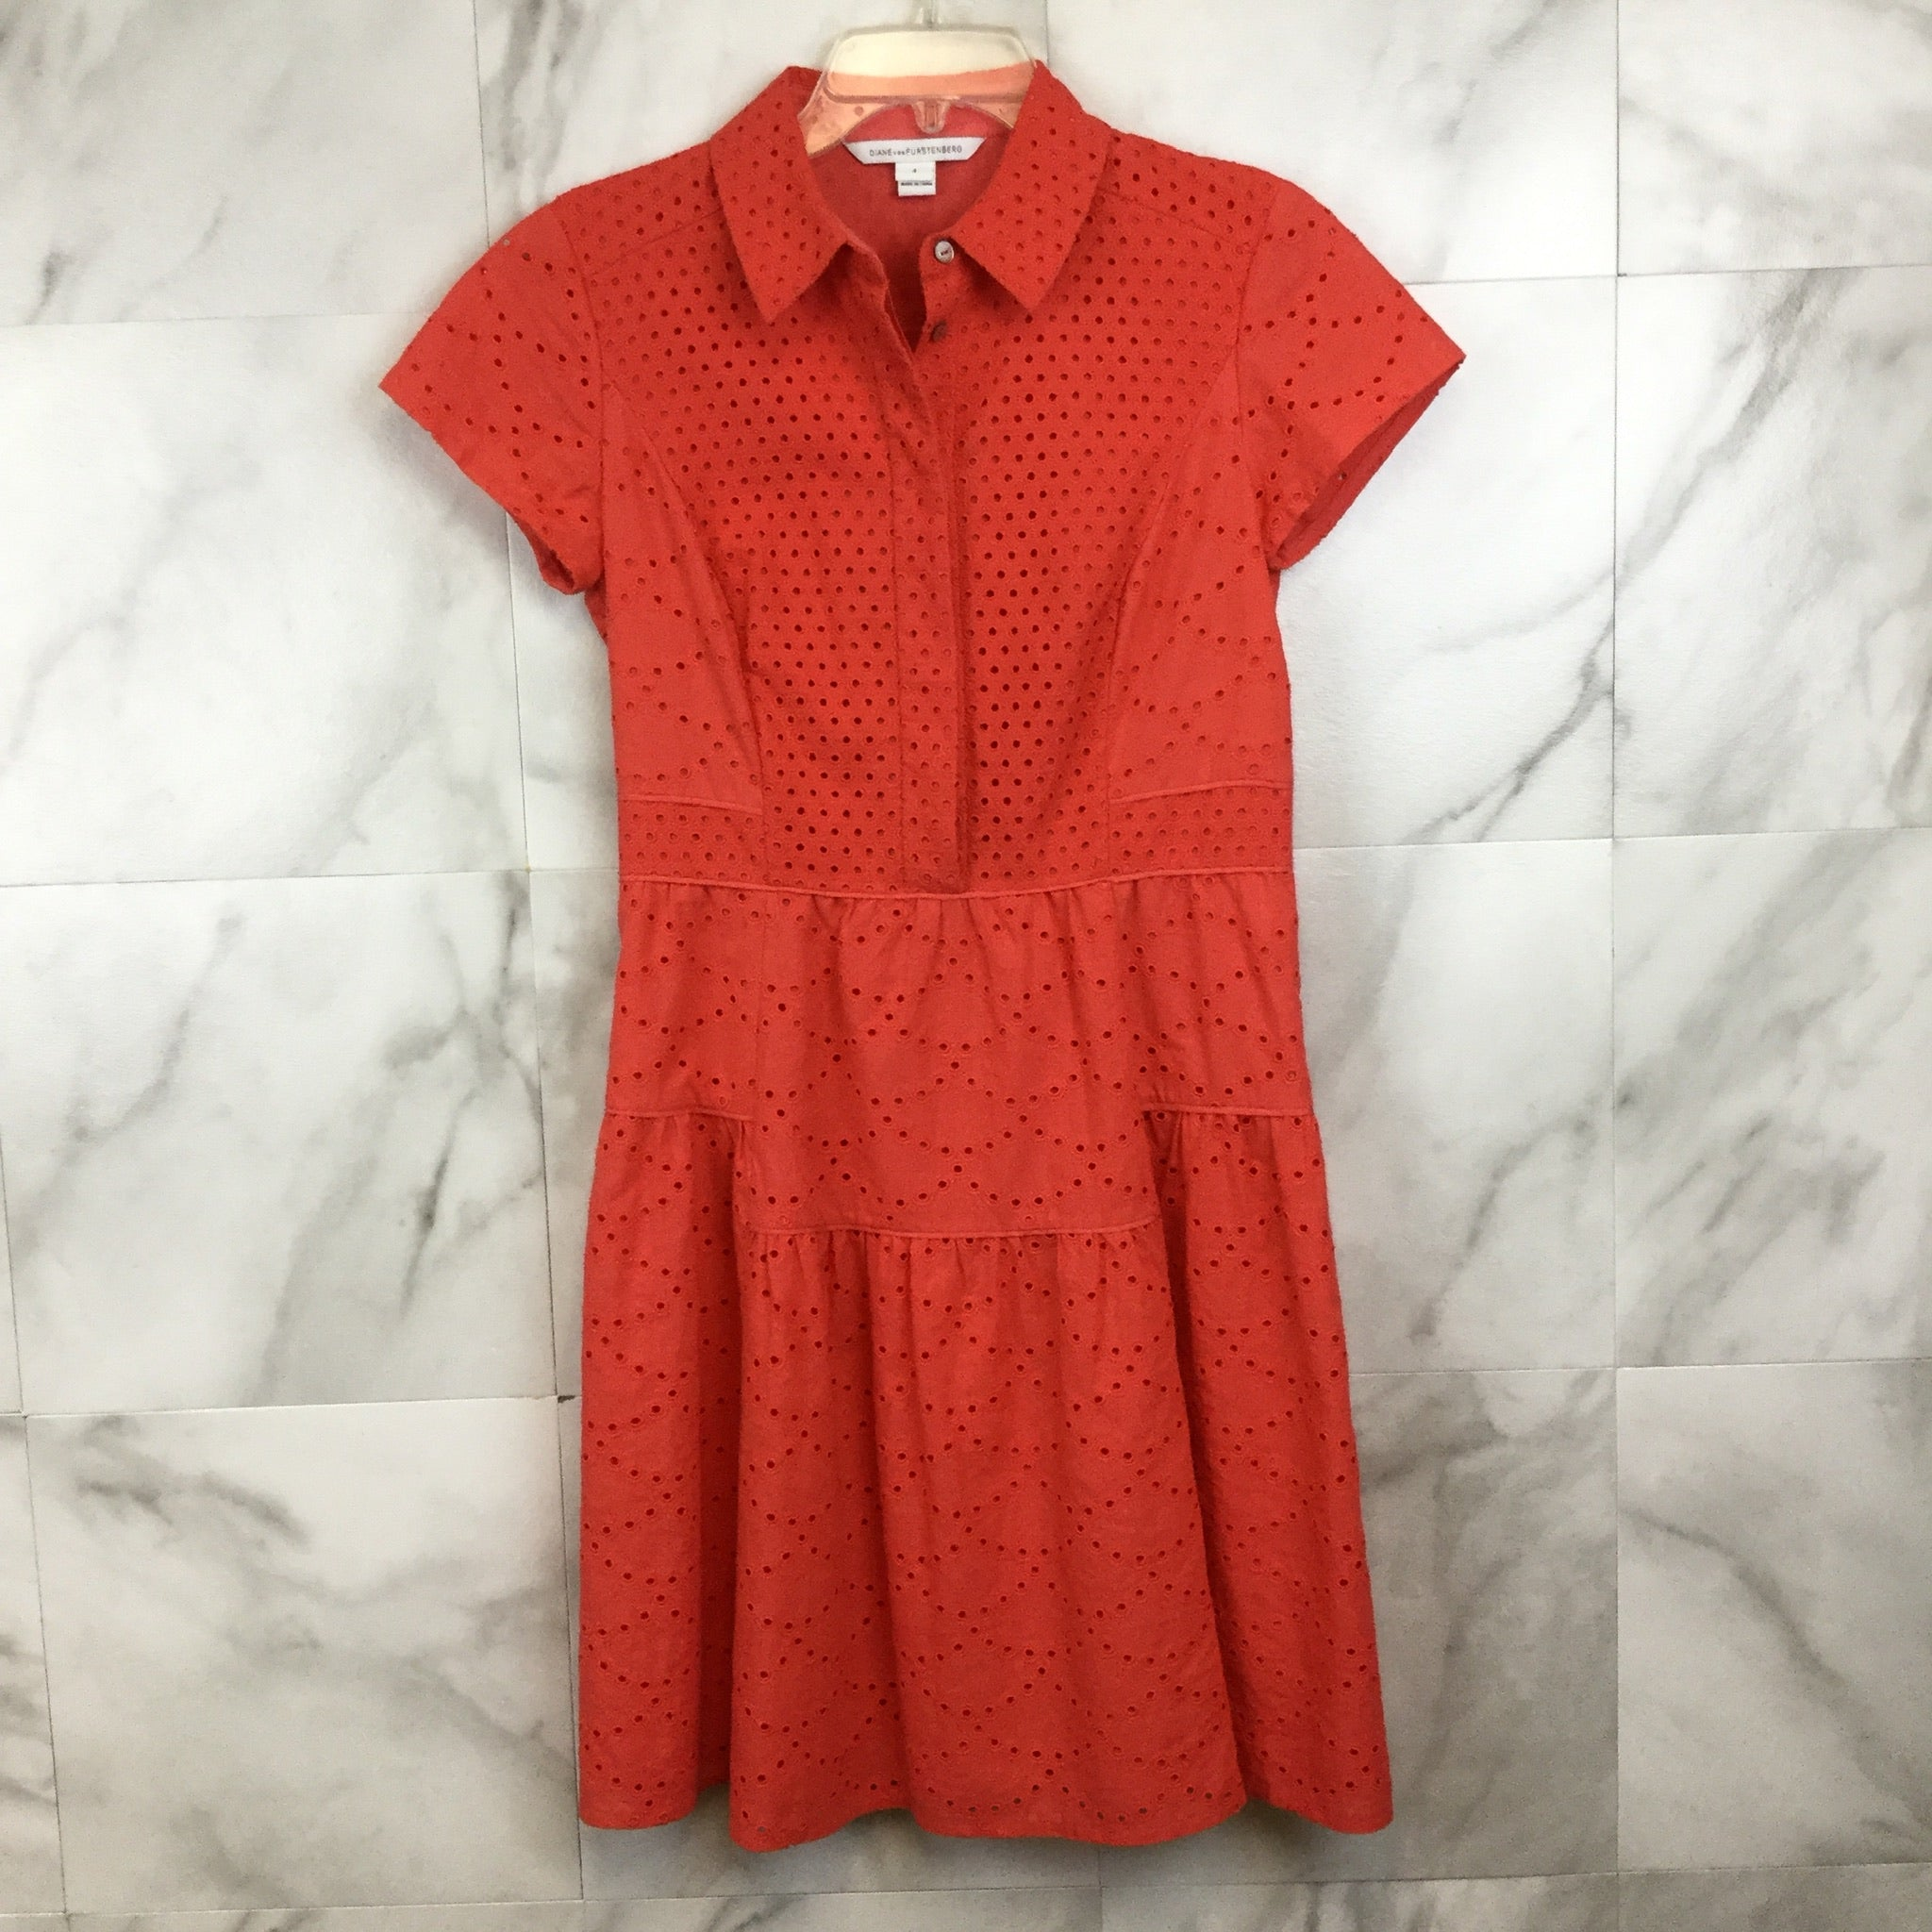 Lilly Pulitzer Cathy Shift Dress - size 2